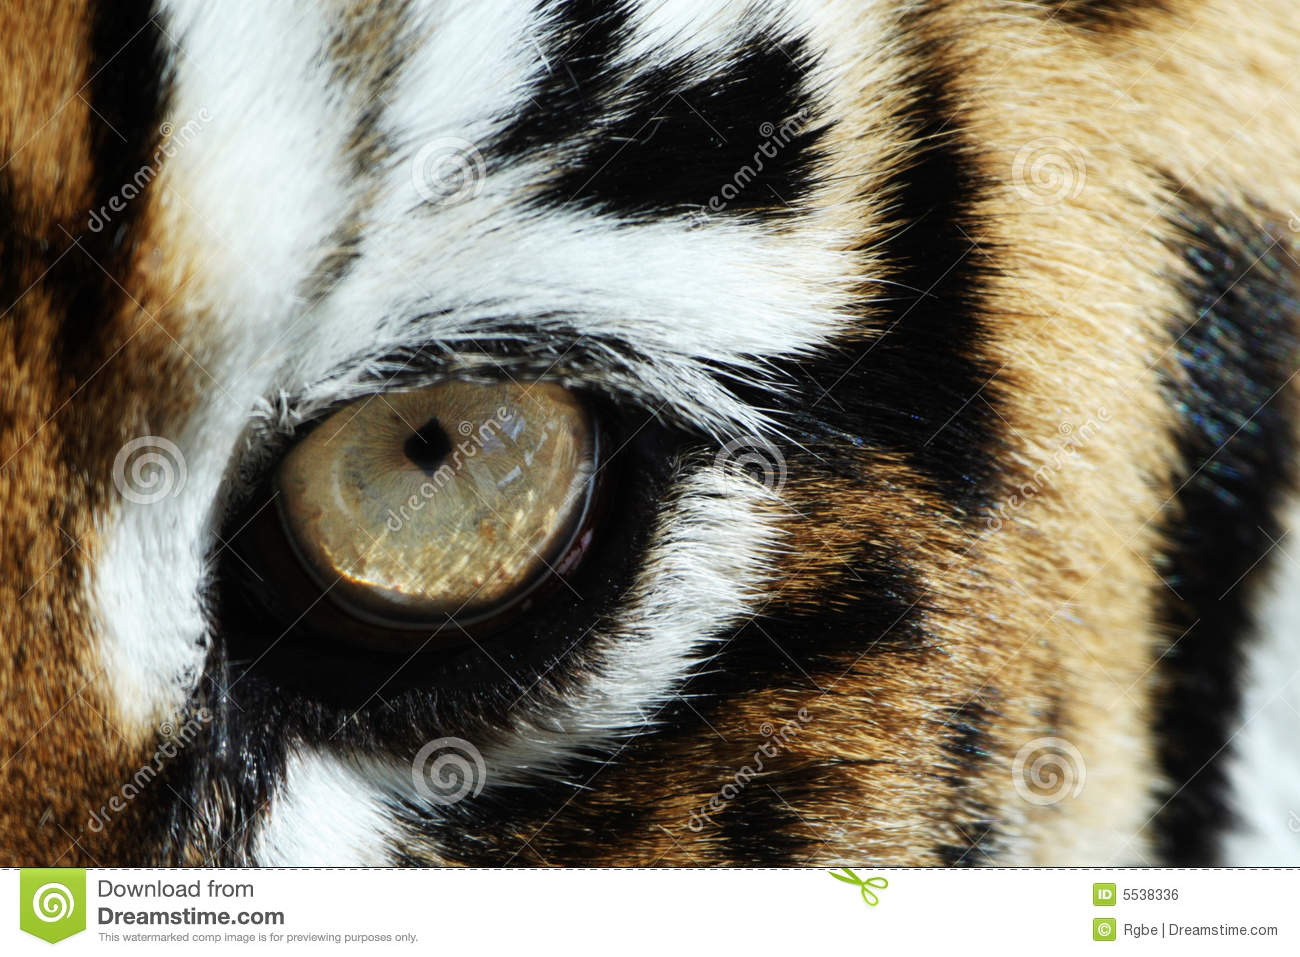 Cool Animal Print Wallpaper Tiger Eye Stock Photo Image Of Detail Carnivora Closeup